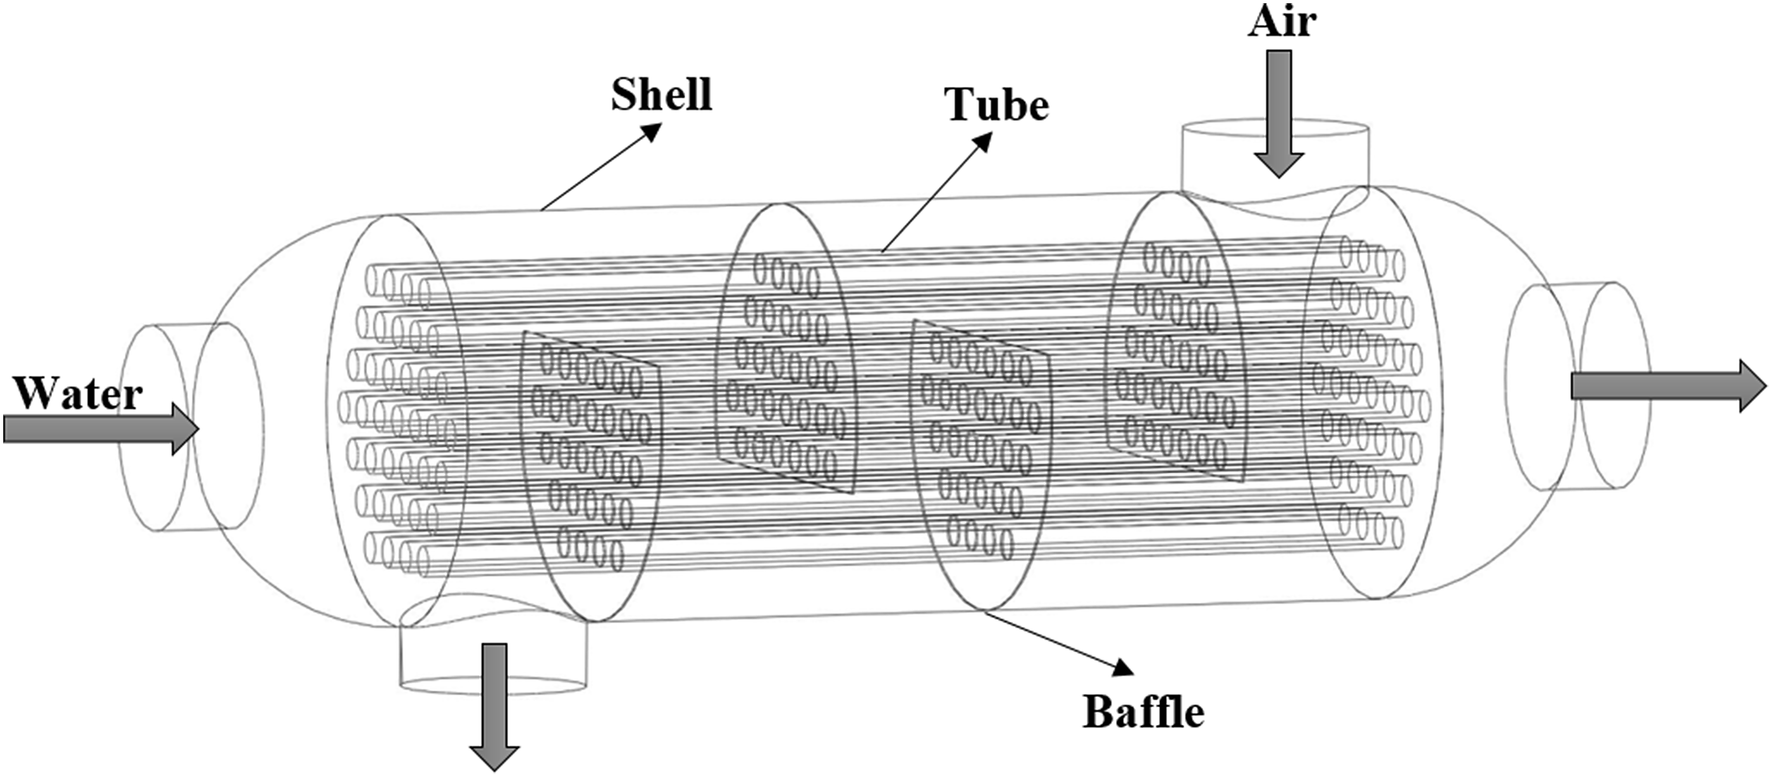 Numerical study of shell and tube heat exchanger with